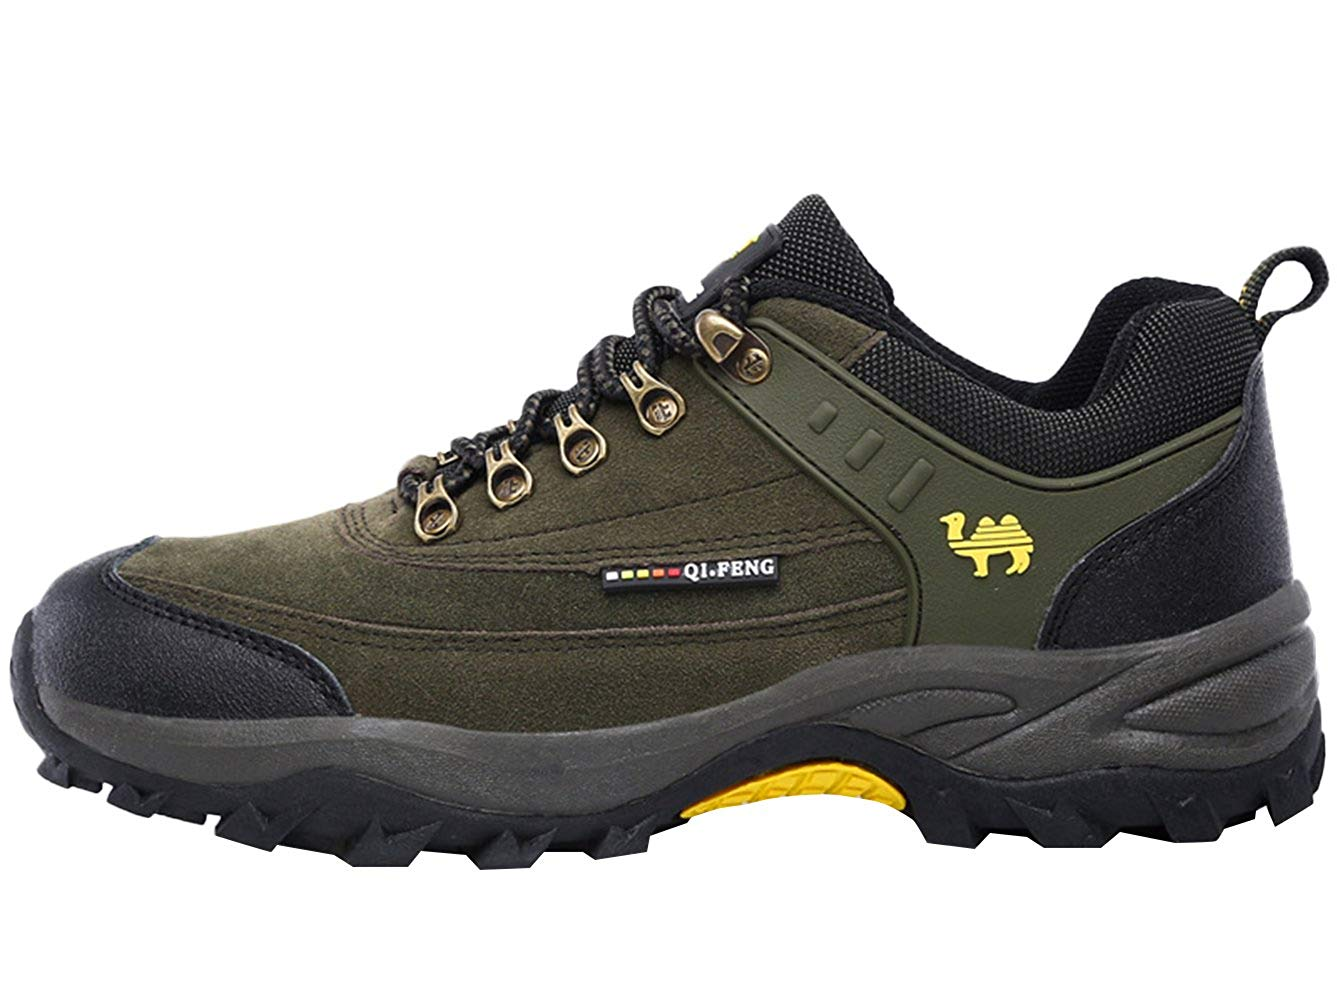 SK Studio Women's Low Waterproof Hiking Shoes